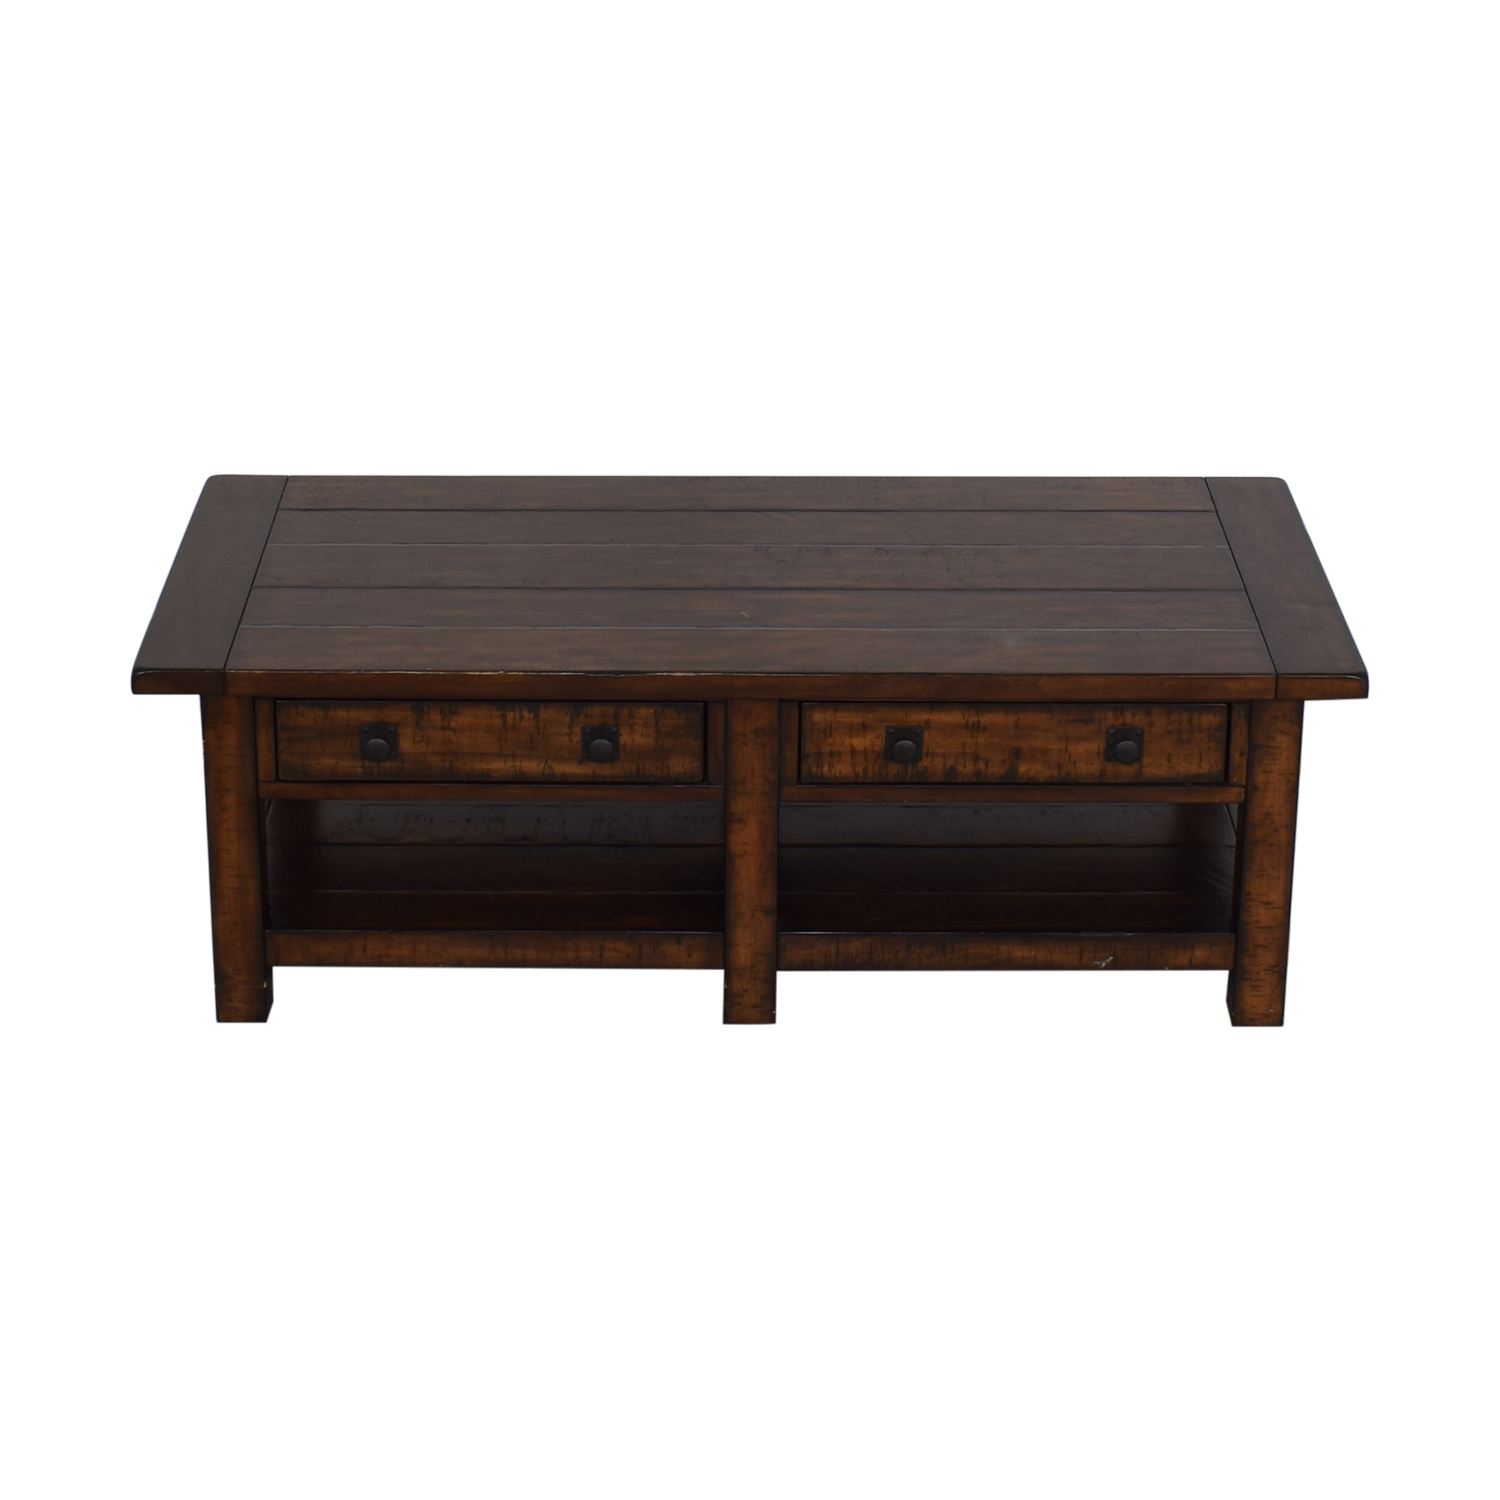 Pottery Barn Pottery Barn Benchwright Rectangular Coffee Table for sale